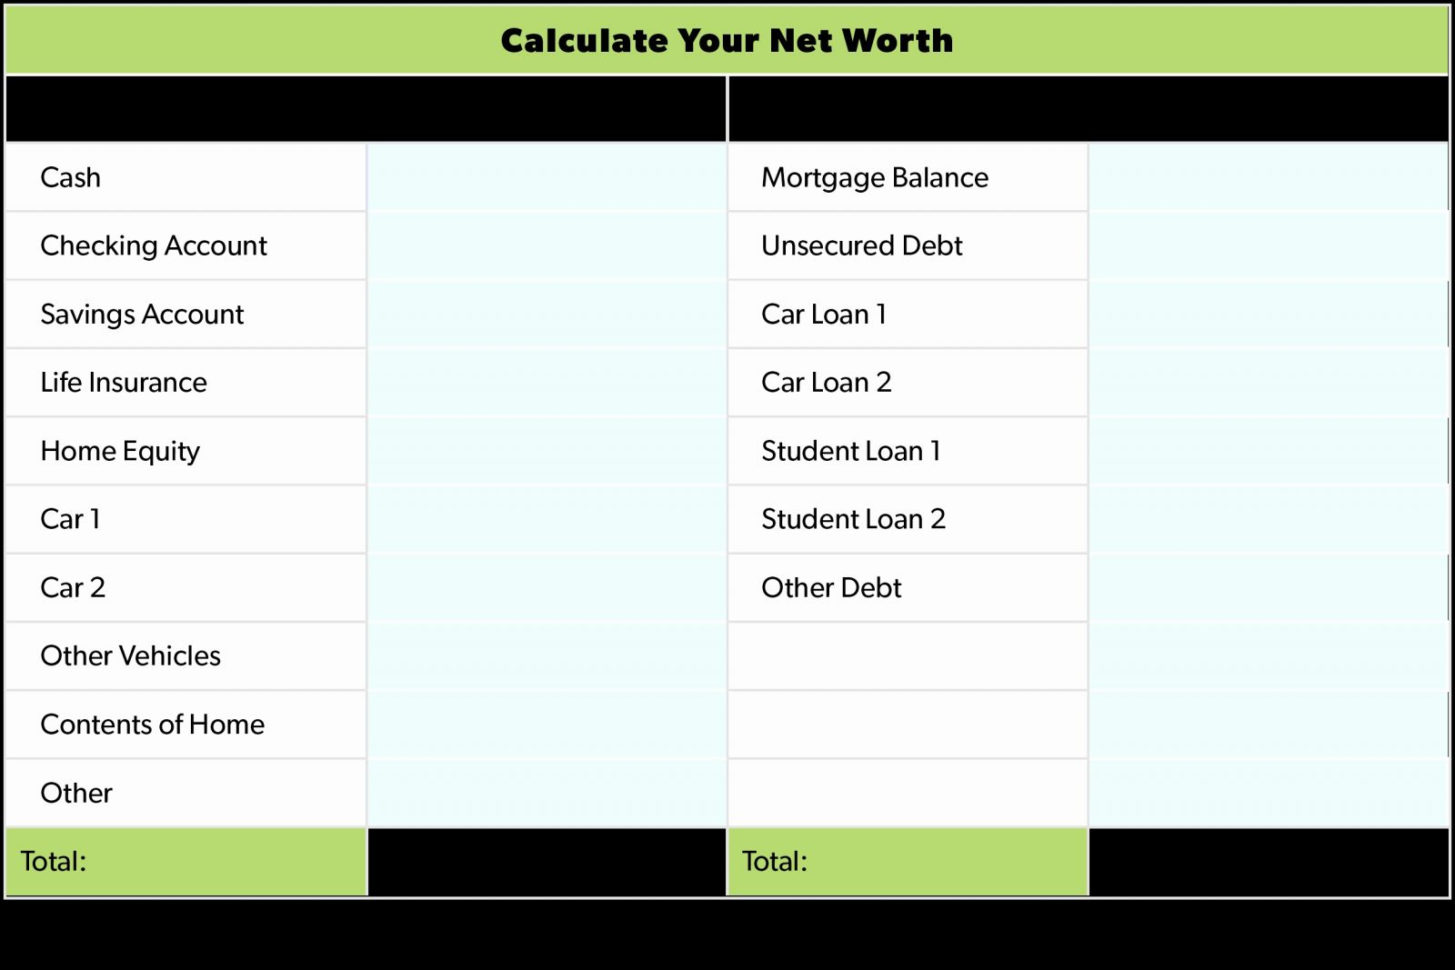 Contents Insurance Calculator Spreadsheet With Regard To Net Worth Spreadsheet Reddit Template For Mac Google Sheets Uk